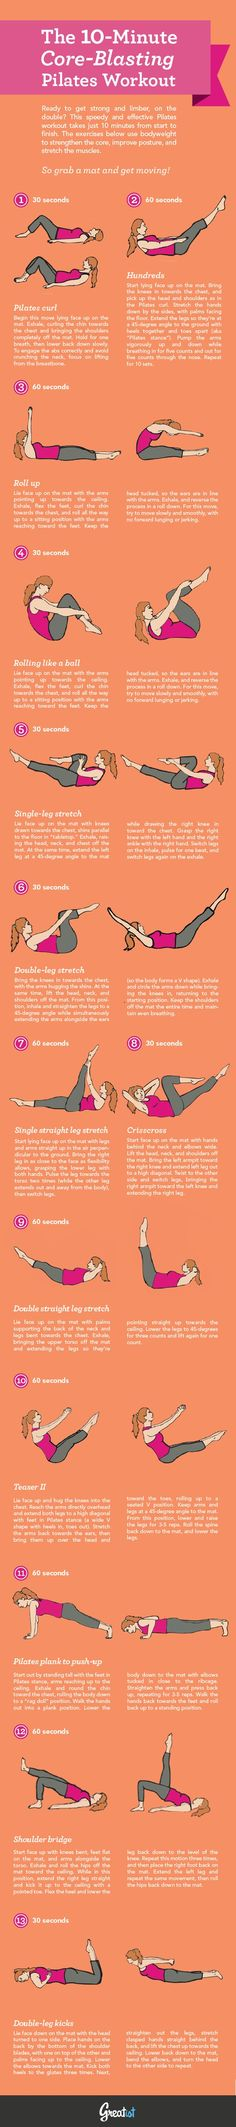 The 10-Minute Core-Blasting Pilates Workout [Infographic] This looks like what I have done following Mari Winsdor, and it really works your core!